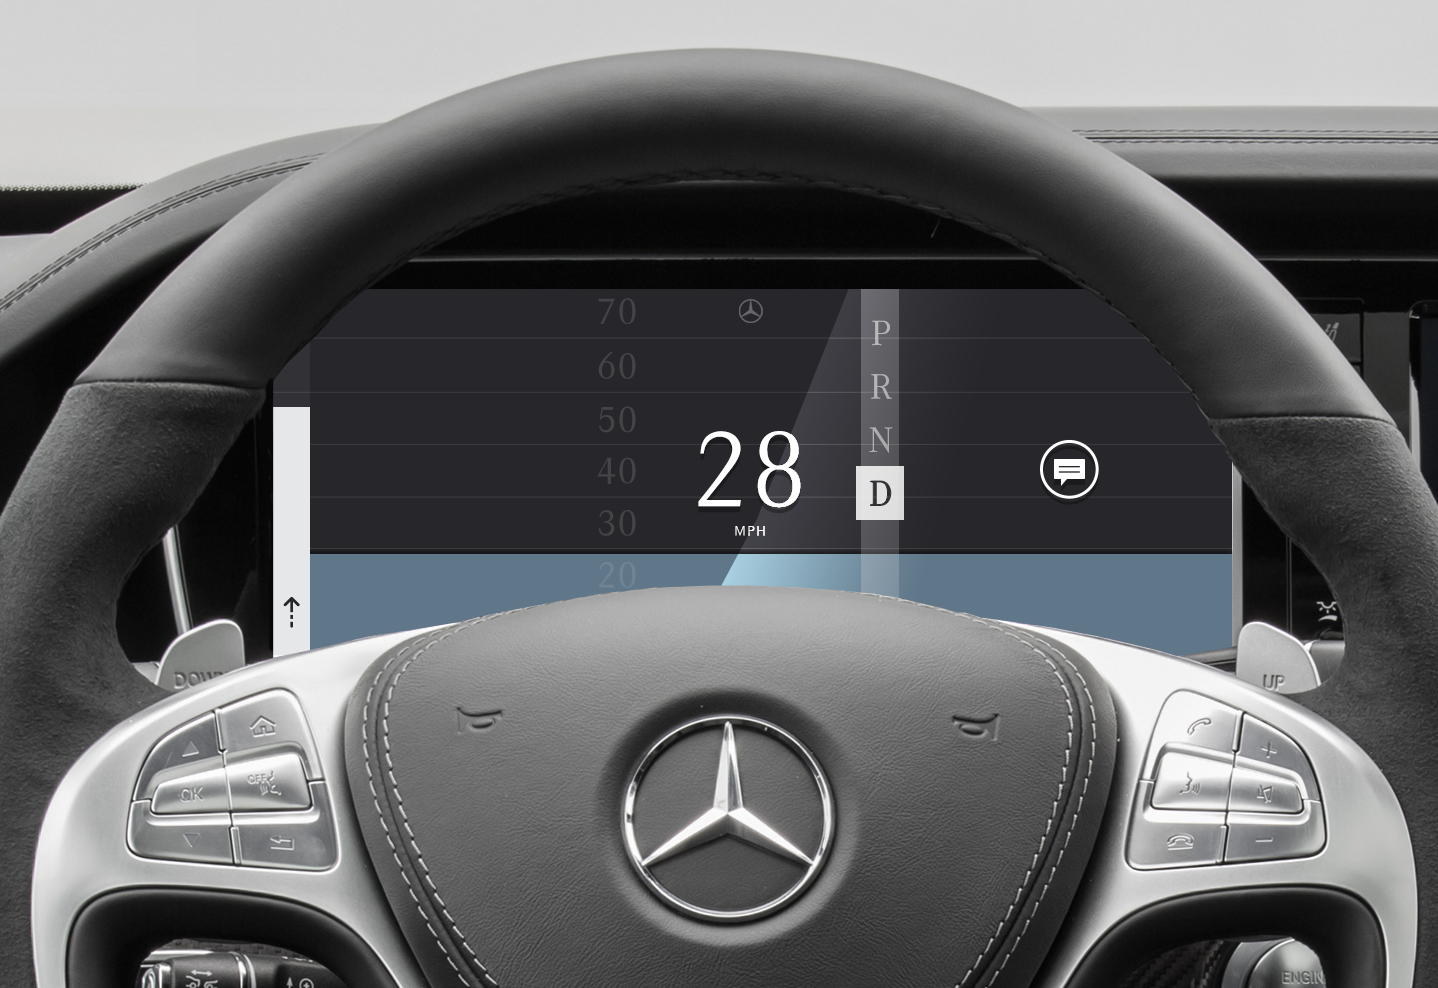 ustwo Reimagines the In-Car Cluster